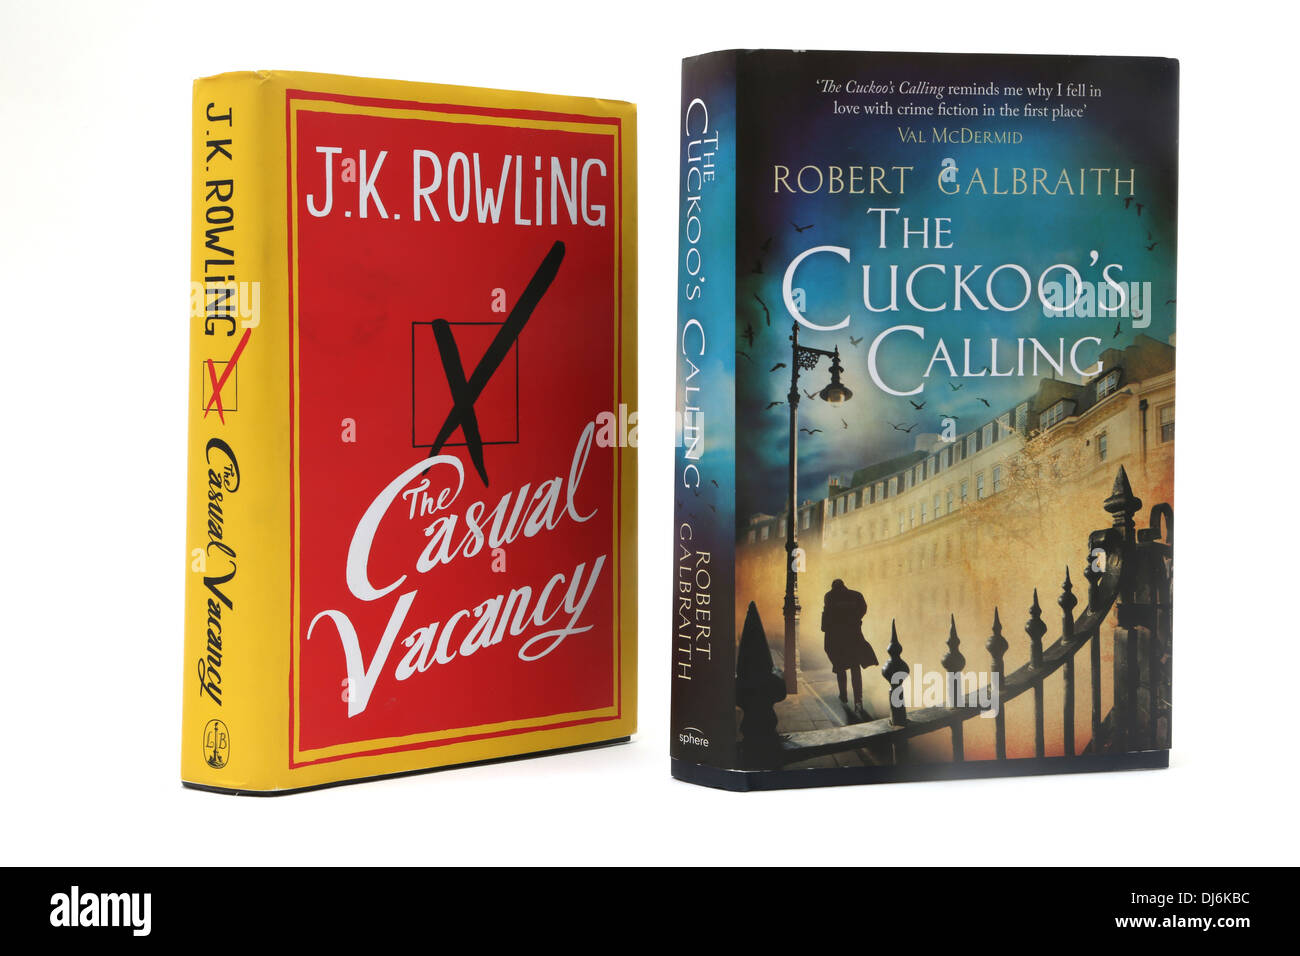 Hardback Books The Casual Vacancy and The Cuckoo's Calling Both By J.K Rowling Stock Photo